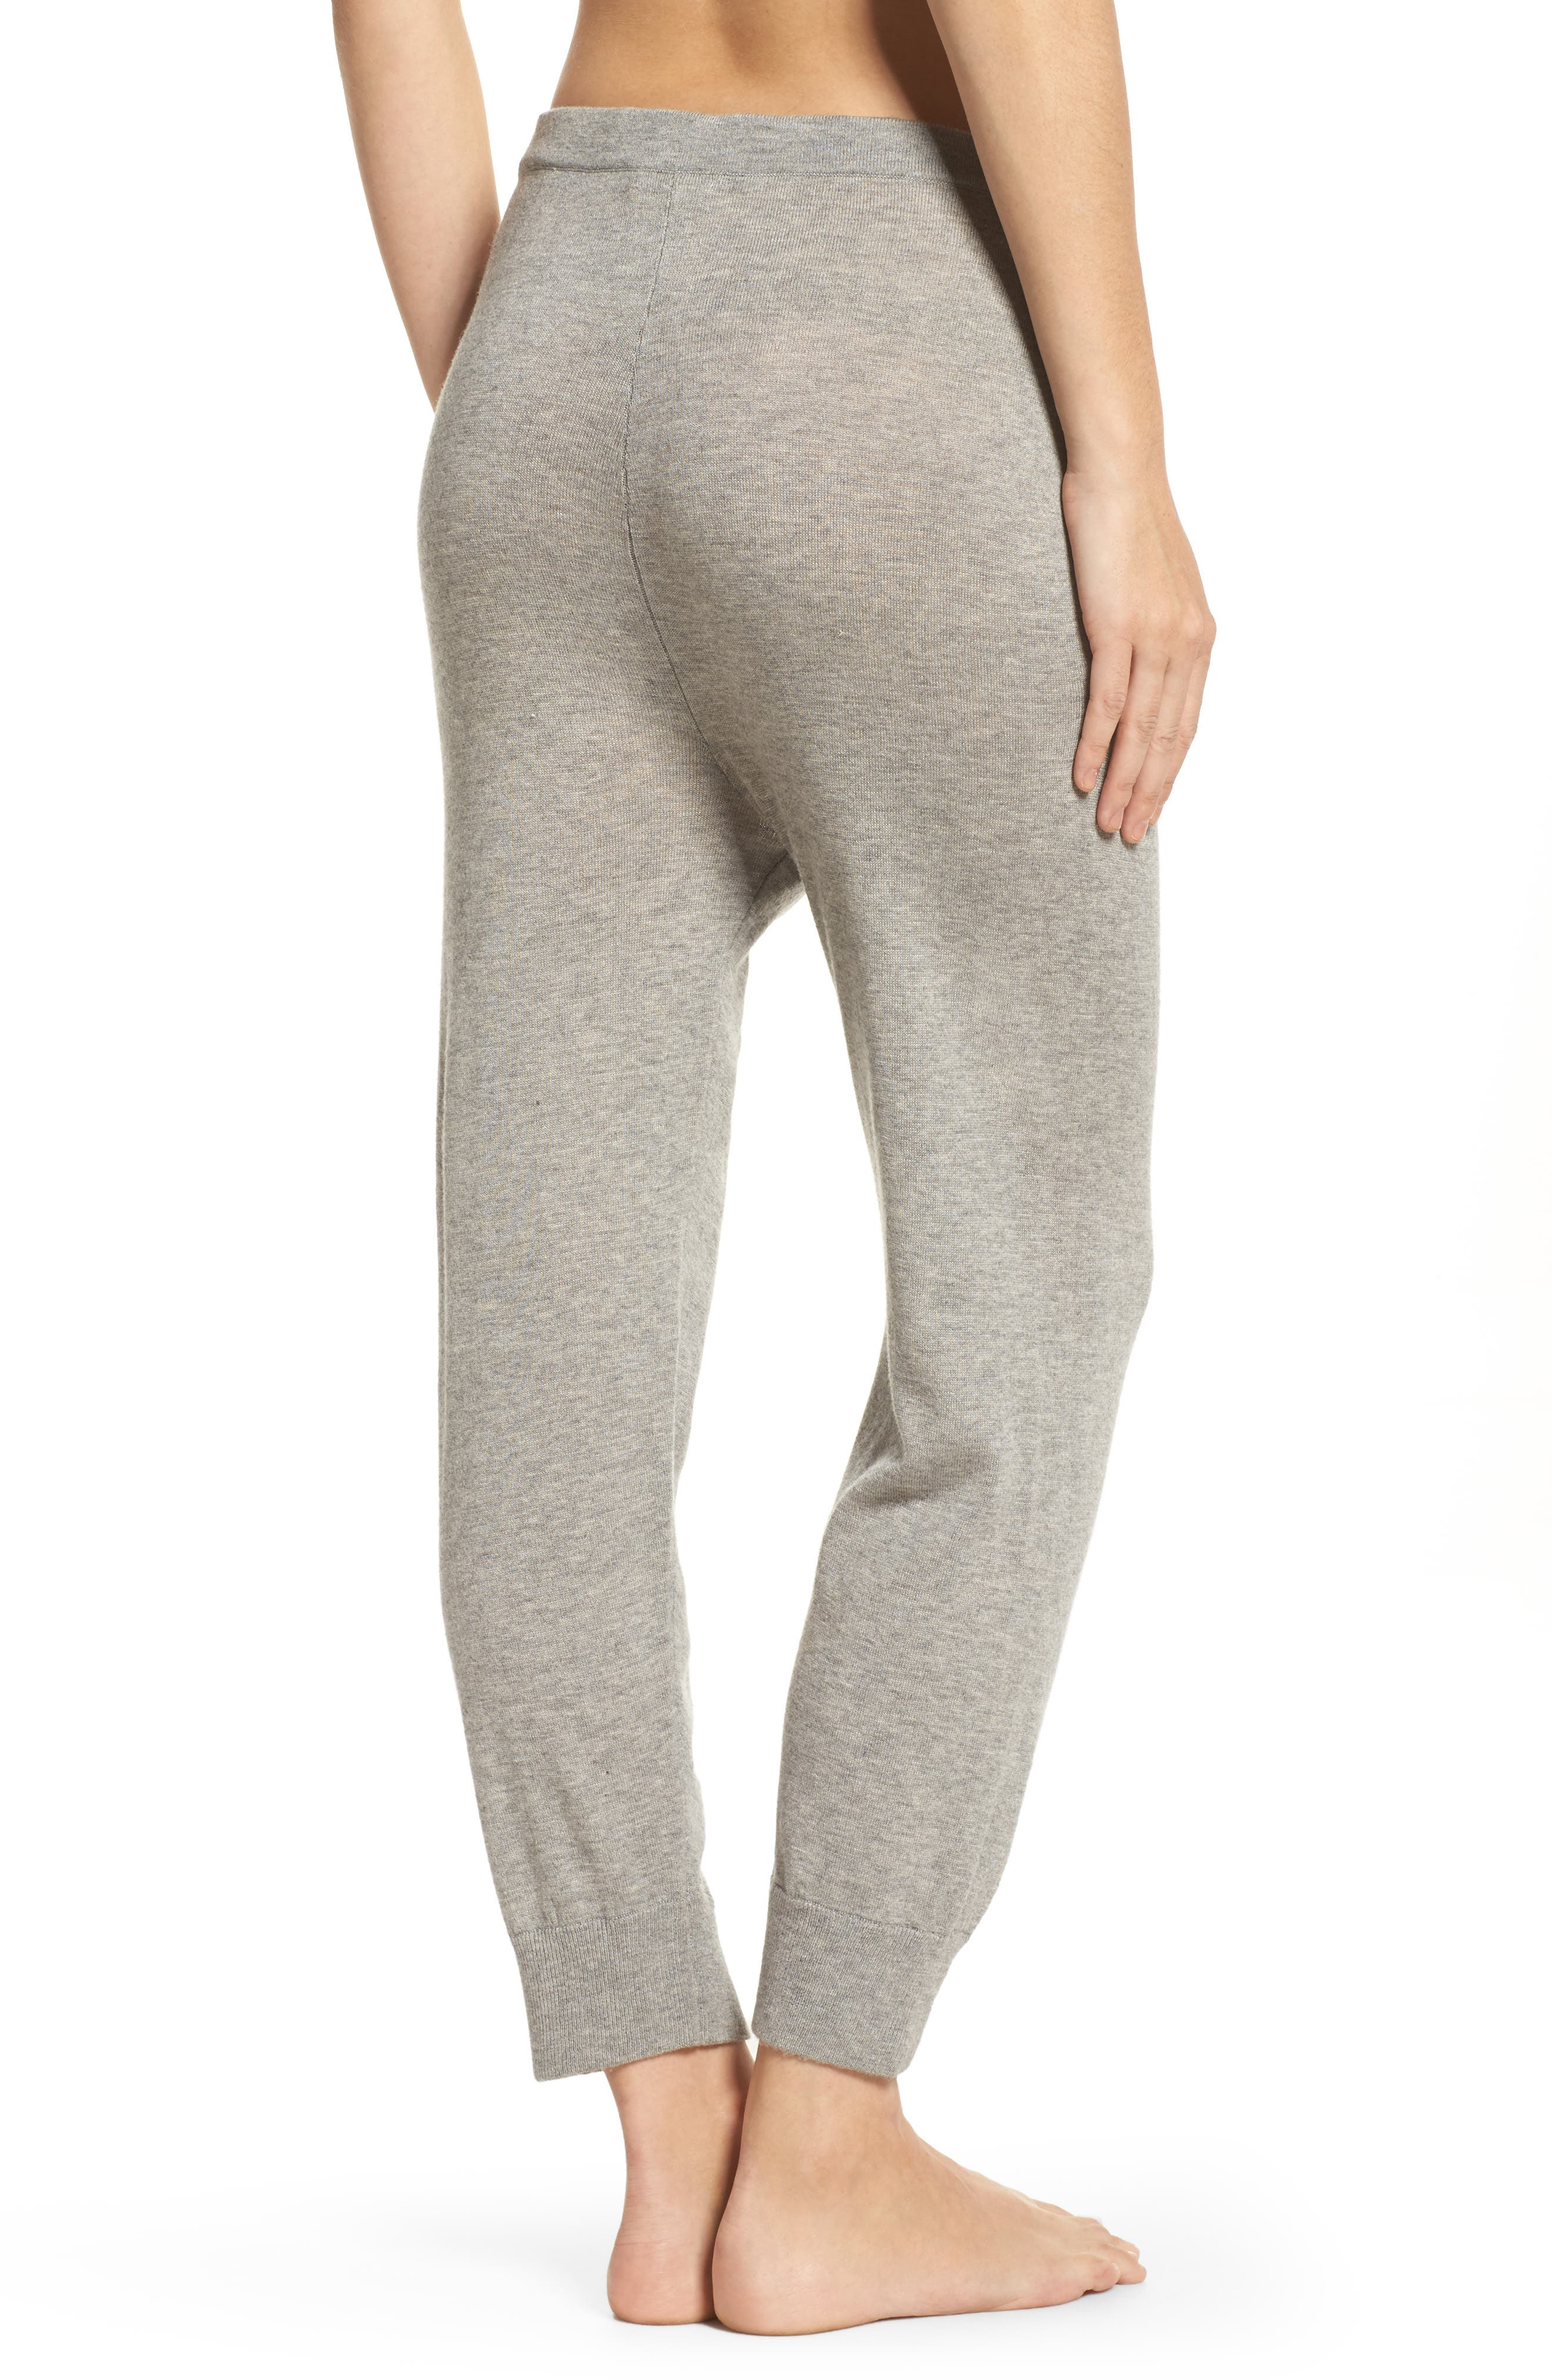 Myla Lounge Pants,                             Alternate thumbnail 2, color,                             Heather Grey